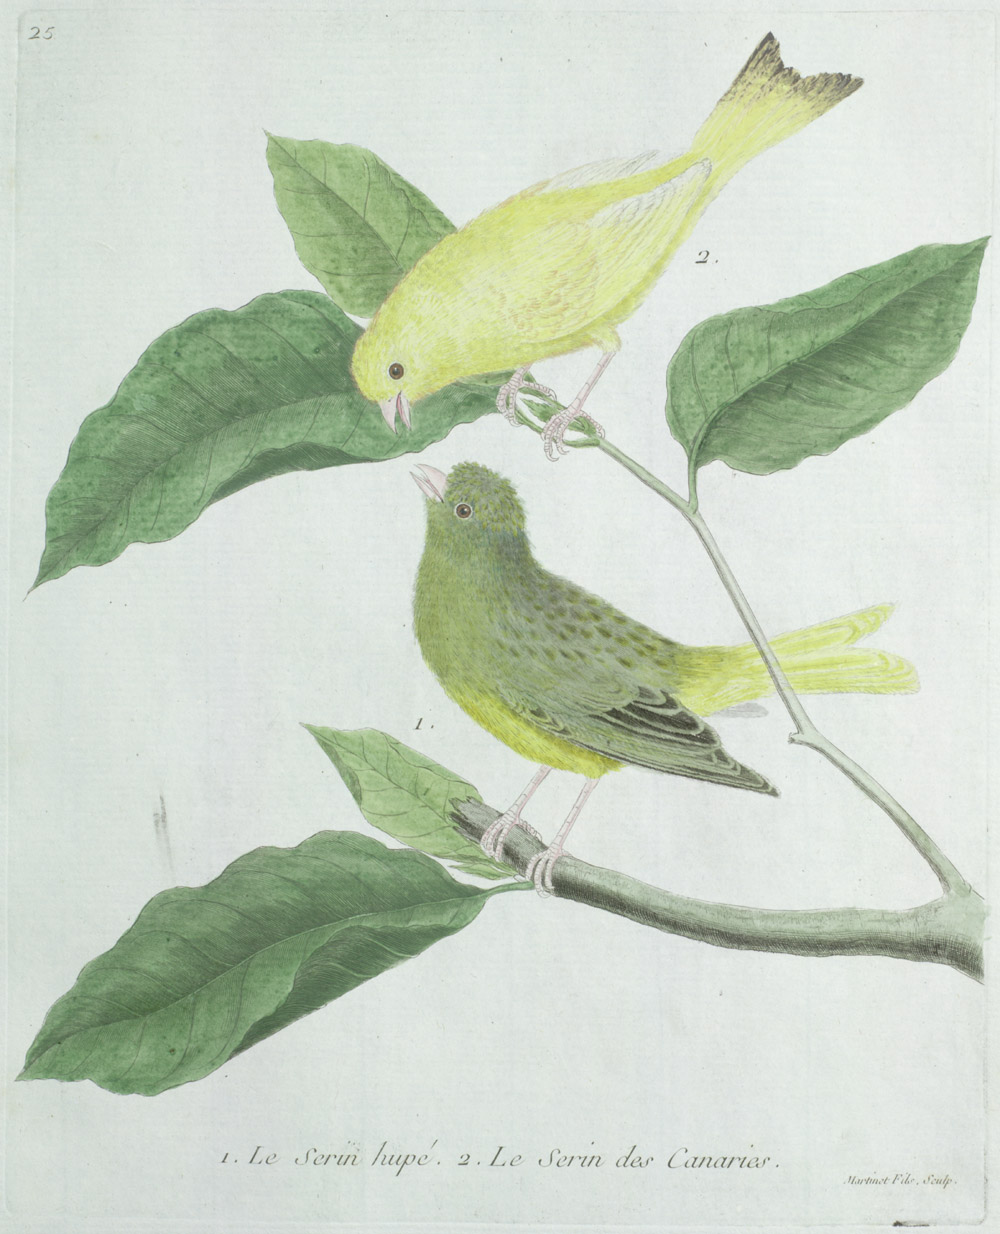 Plate 25: 1. Le Serin Hupé. 2. Le Serin des Canaries.,  Image number:SIL13-1-55b